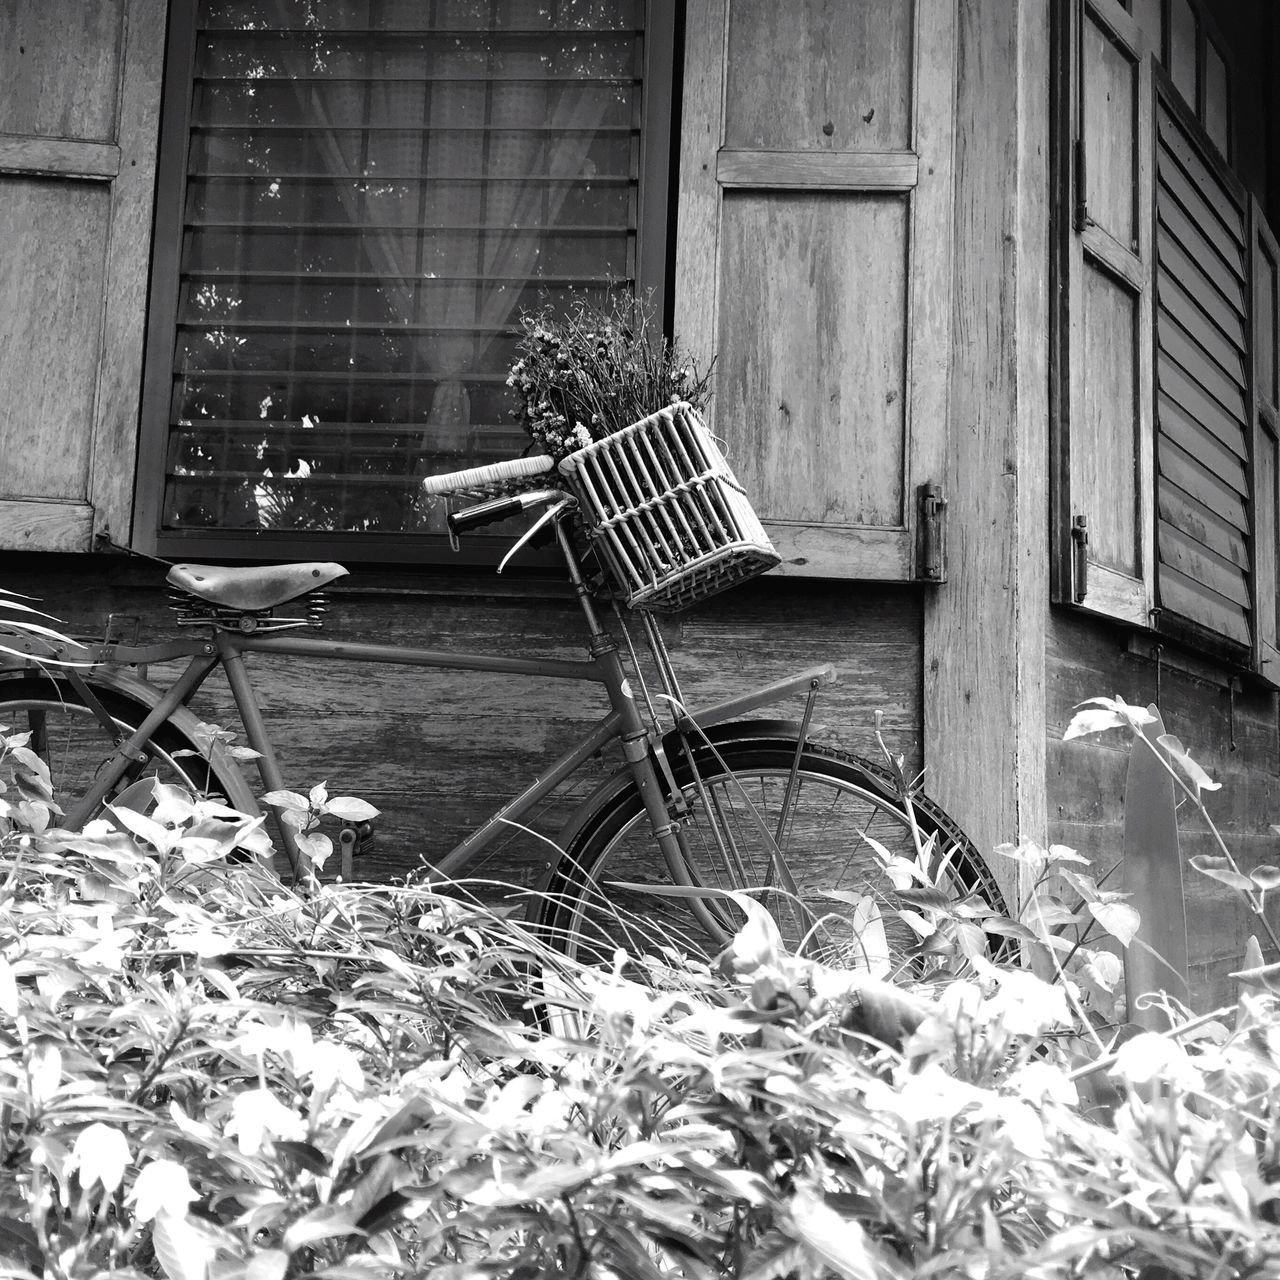 built structure, architecture, building exterior, building, day, plant, no people, house, nature, window, chair, abandoned, outdoors, seat, wood - material, front or back yard, absence, basket, obsolete, residential district, wheel